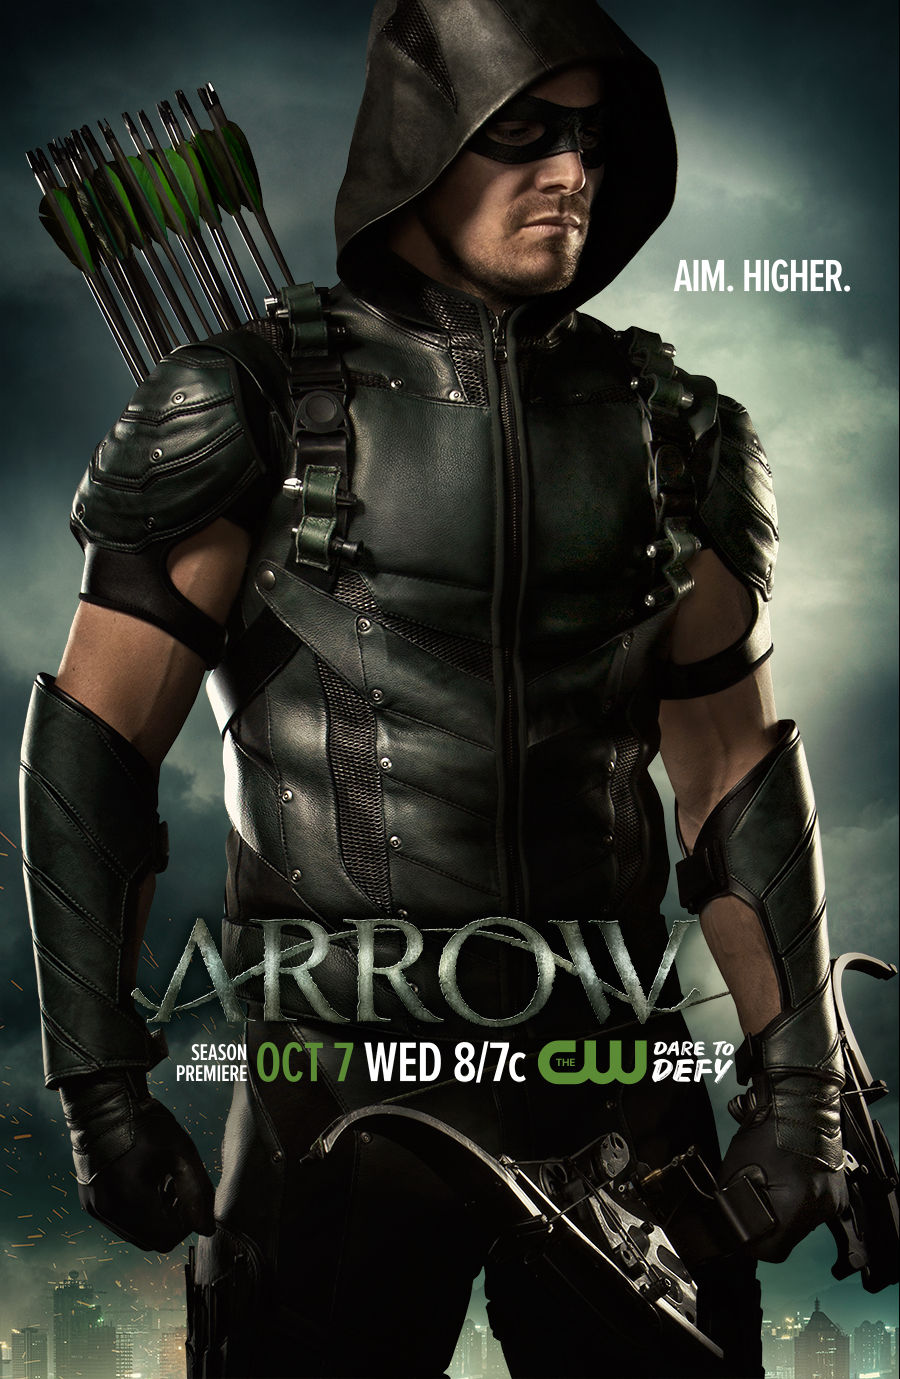 Arrow-Season-4-Poster